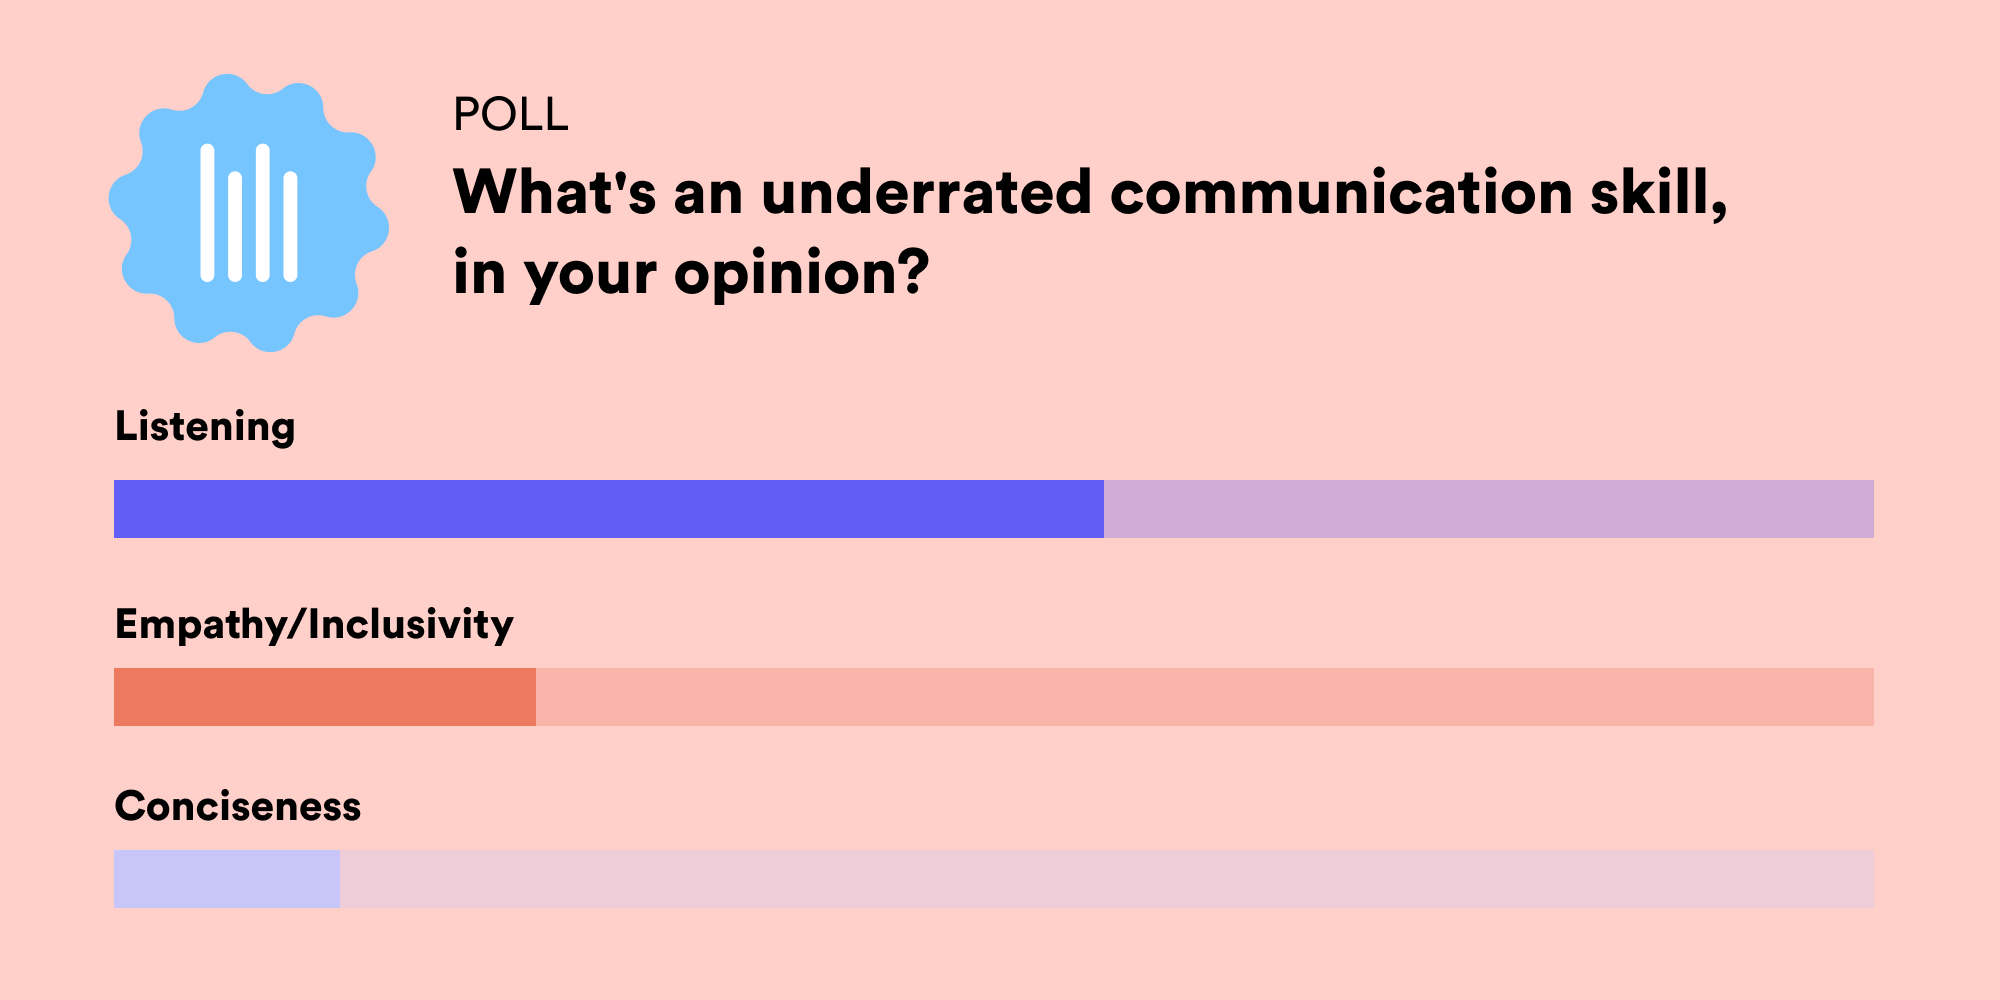 A color image to show the top responses by category (listening being the top response) to a Twitter question about underrated communication skills.